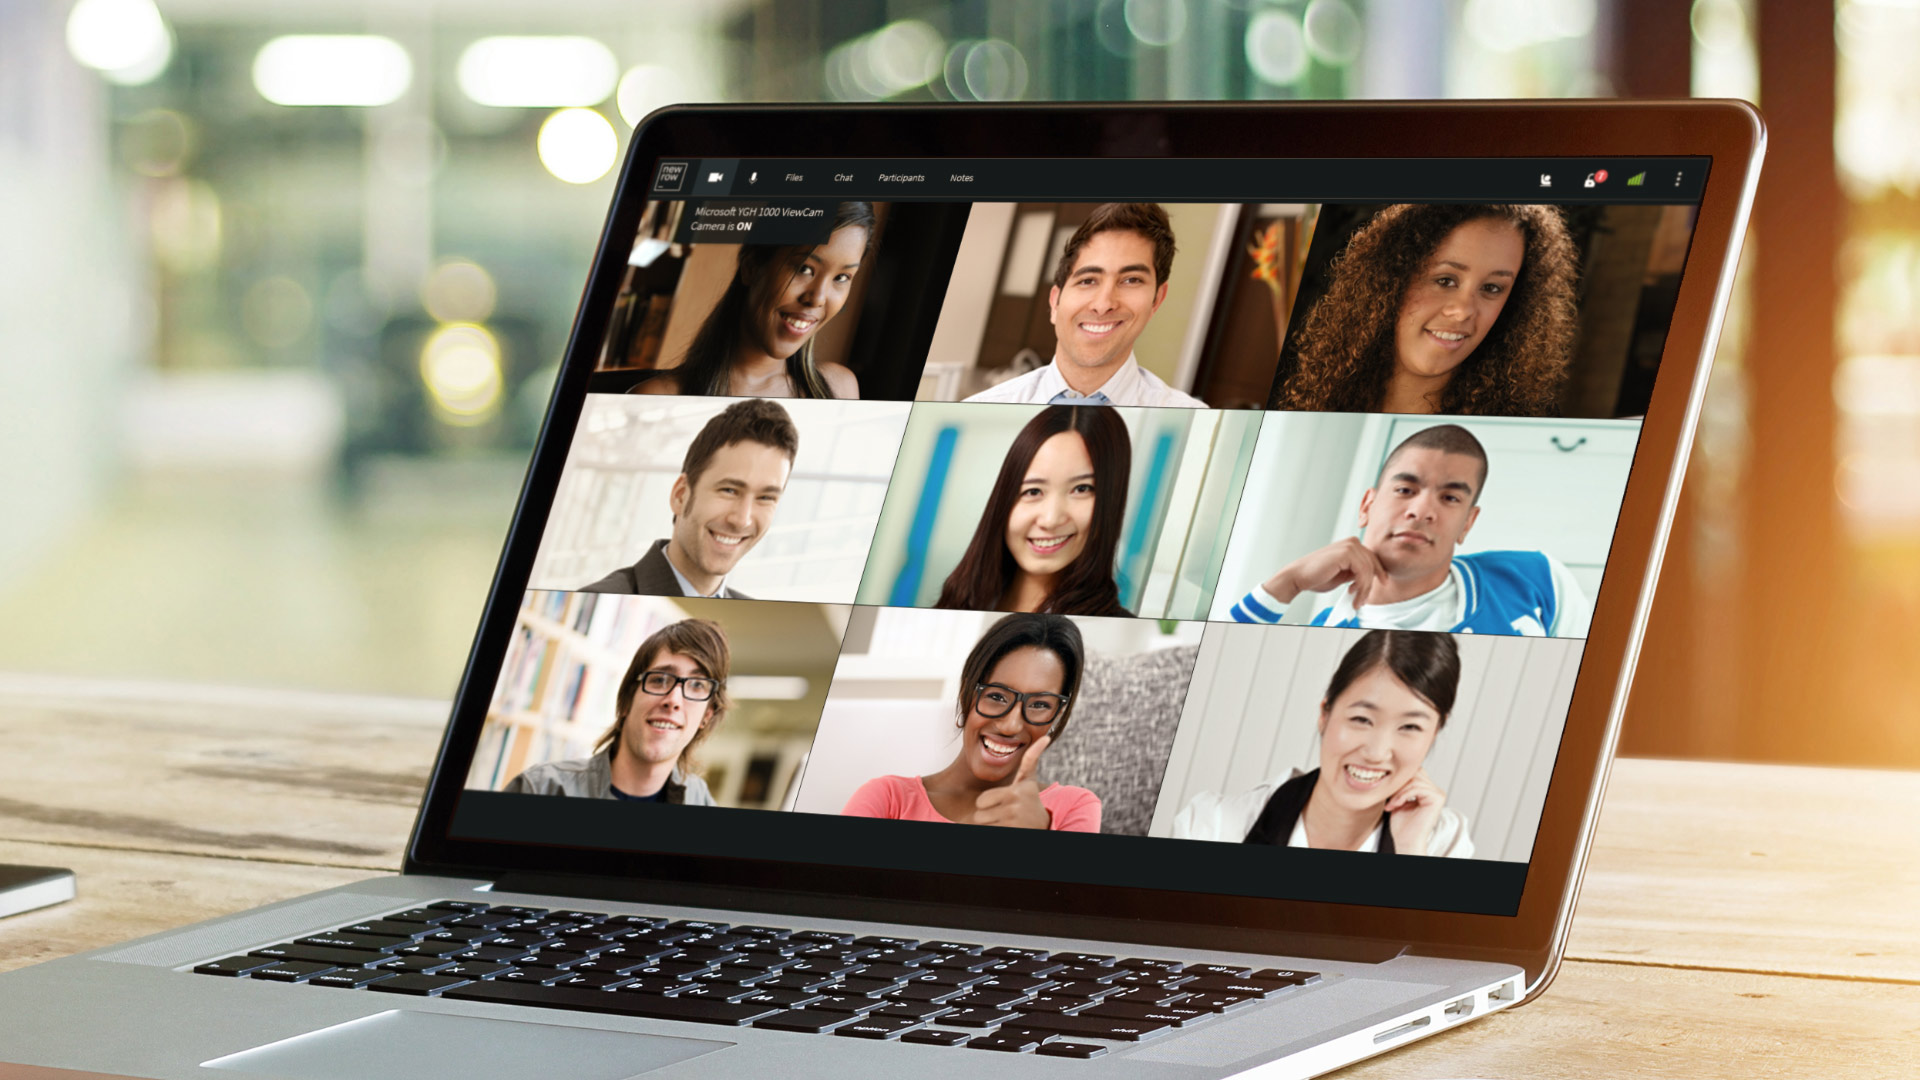 Join your new online classroom using Zoom!